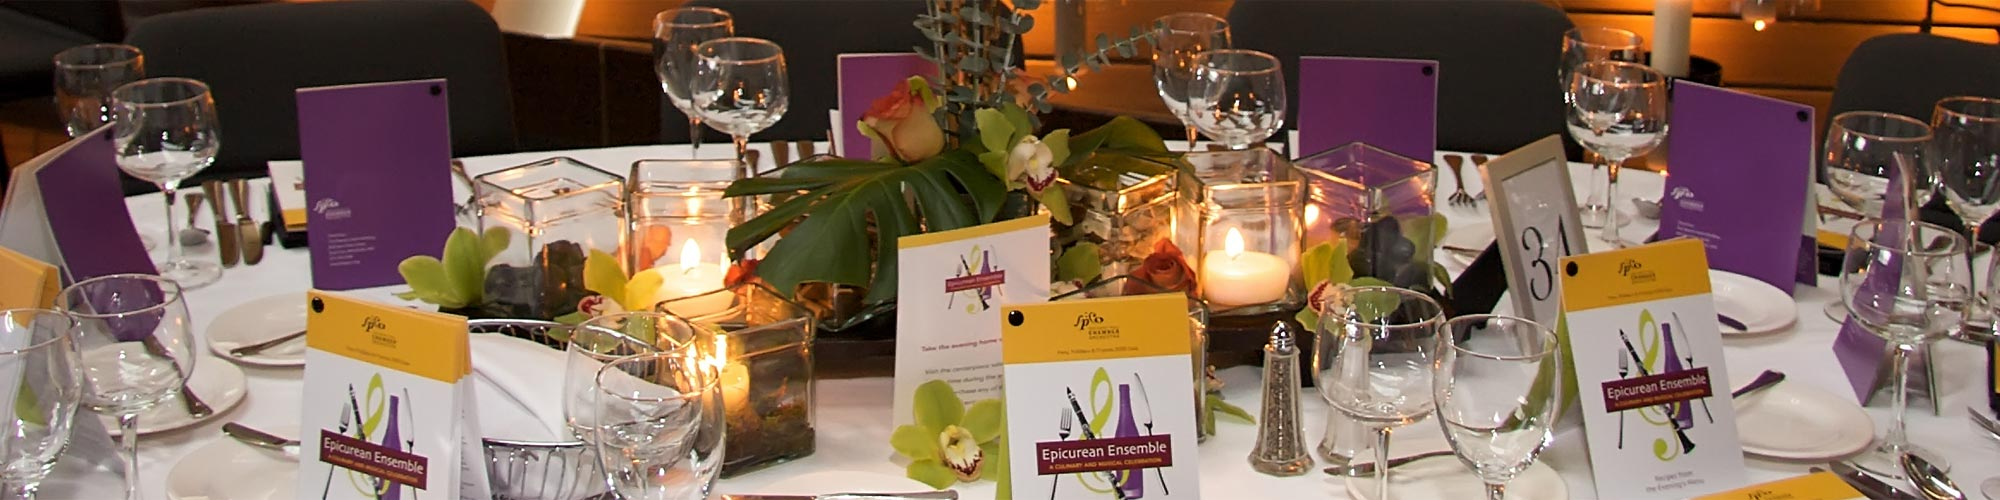 table setting for a party at McNamara Alumni Center